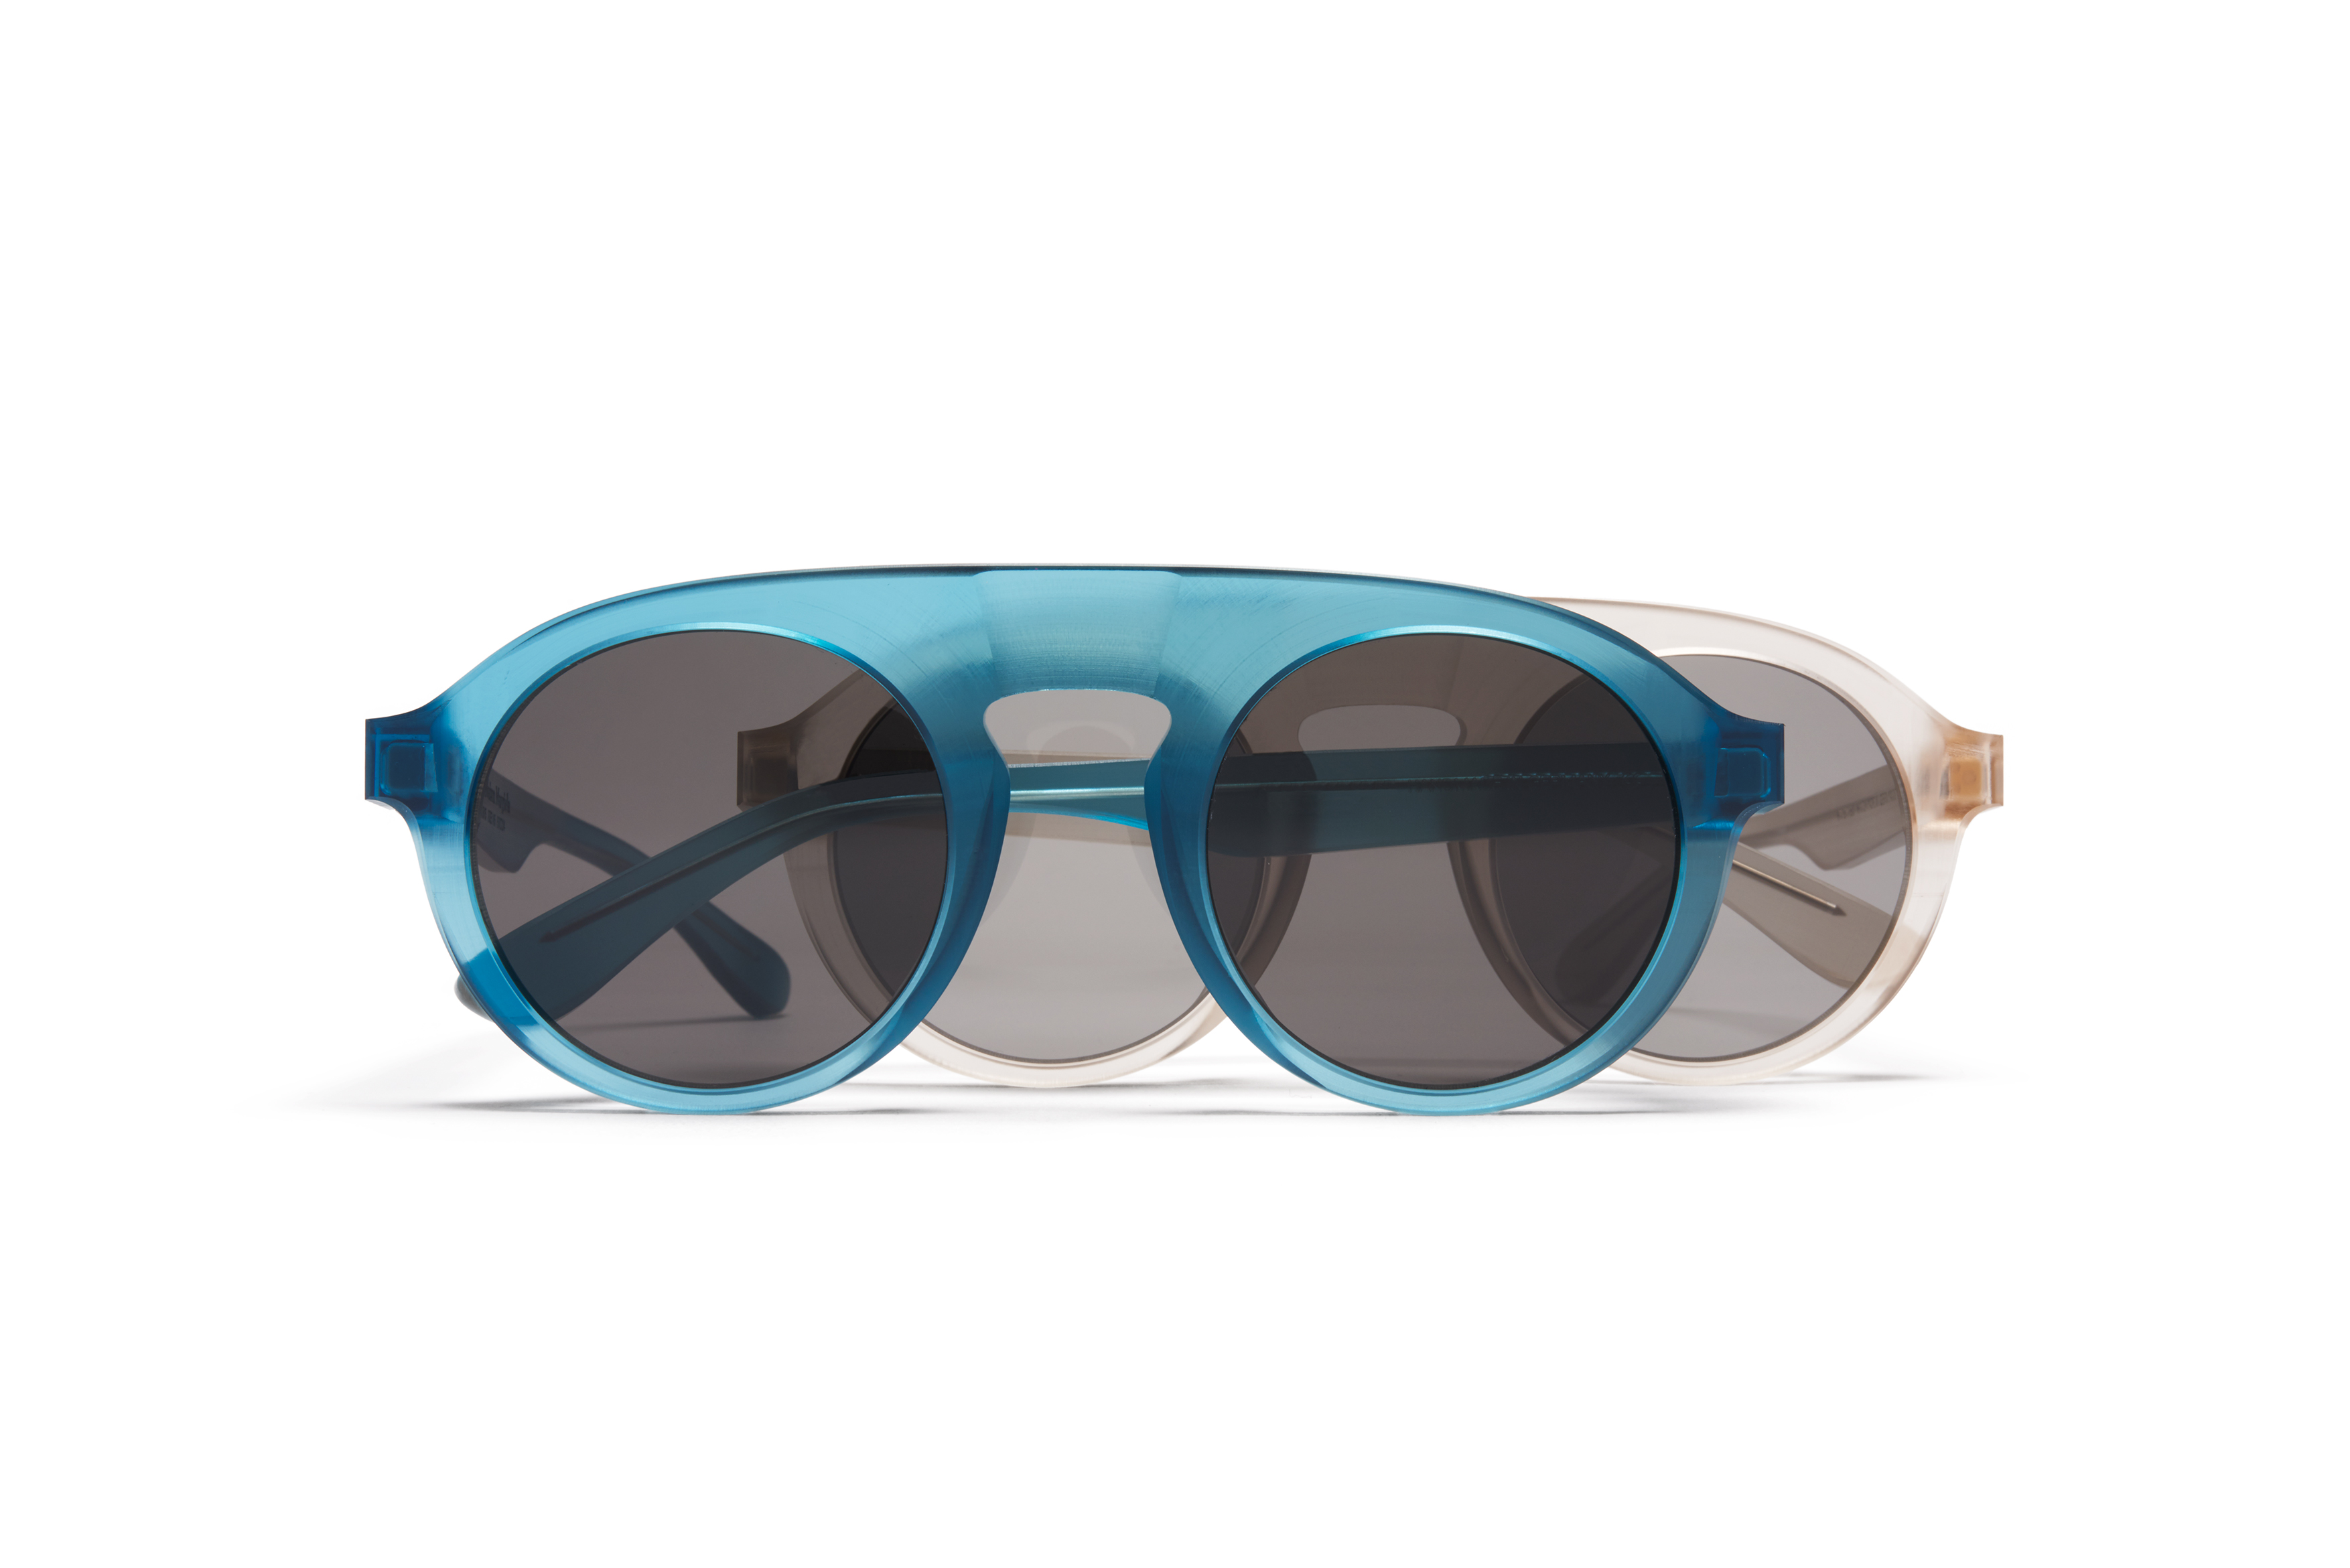 MYKITA Mm Sun Mmraw003 Raw Champagne Grey Solid MYKITA Mm Sun Turquoise Darkgrey Solid Gs